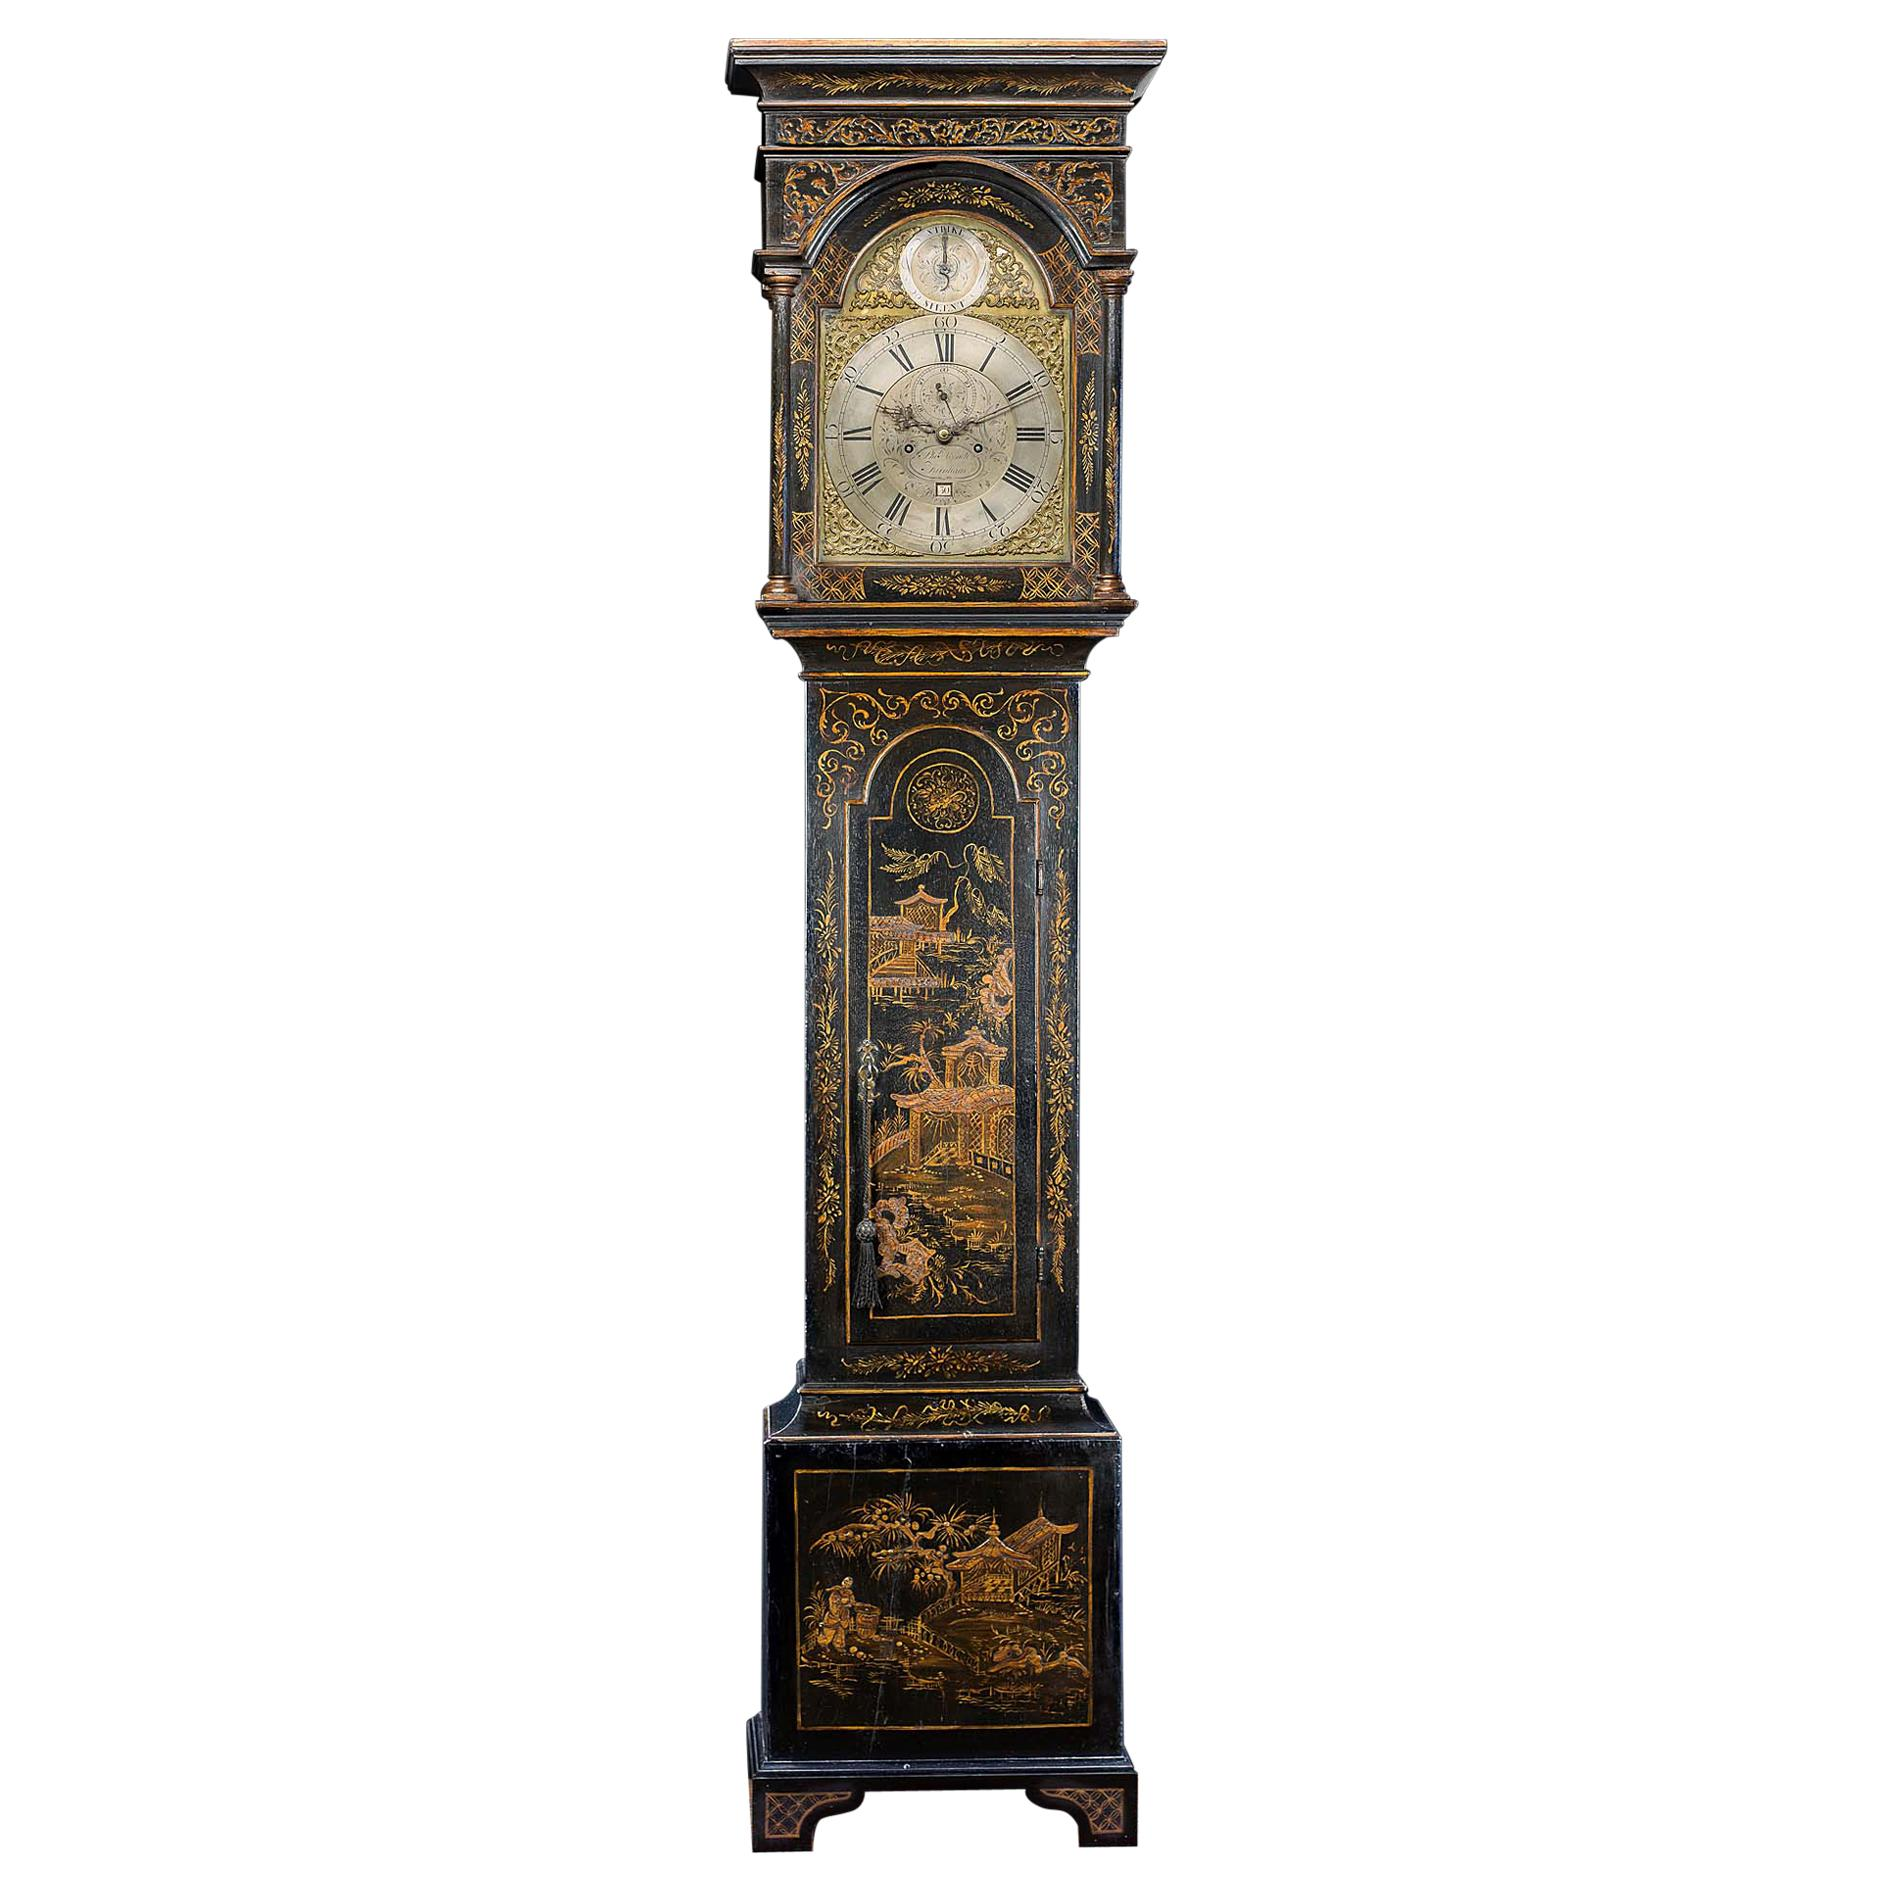 18th Century Longcase Clock with Chinoiserie Lacquer